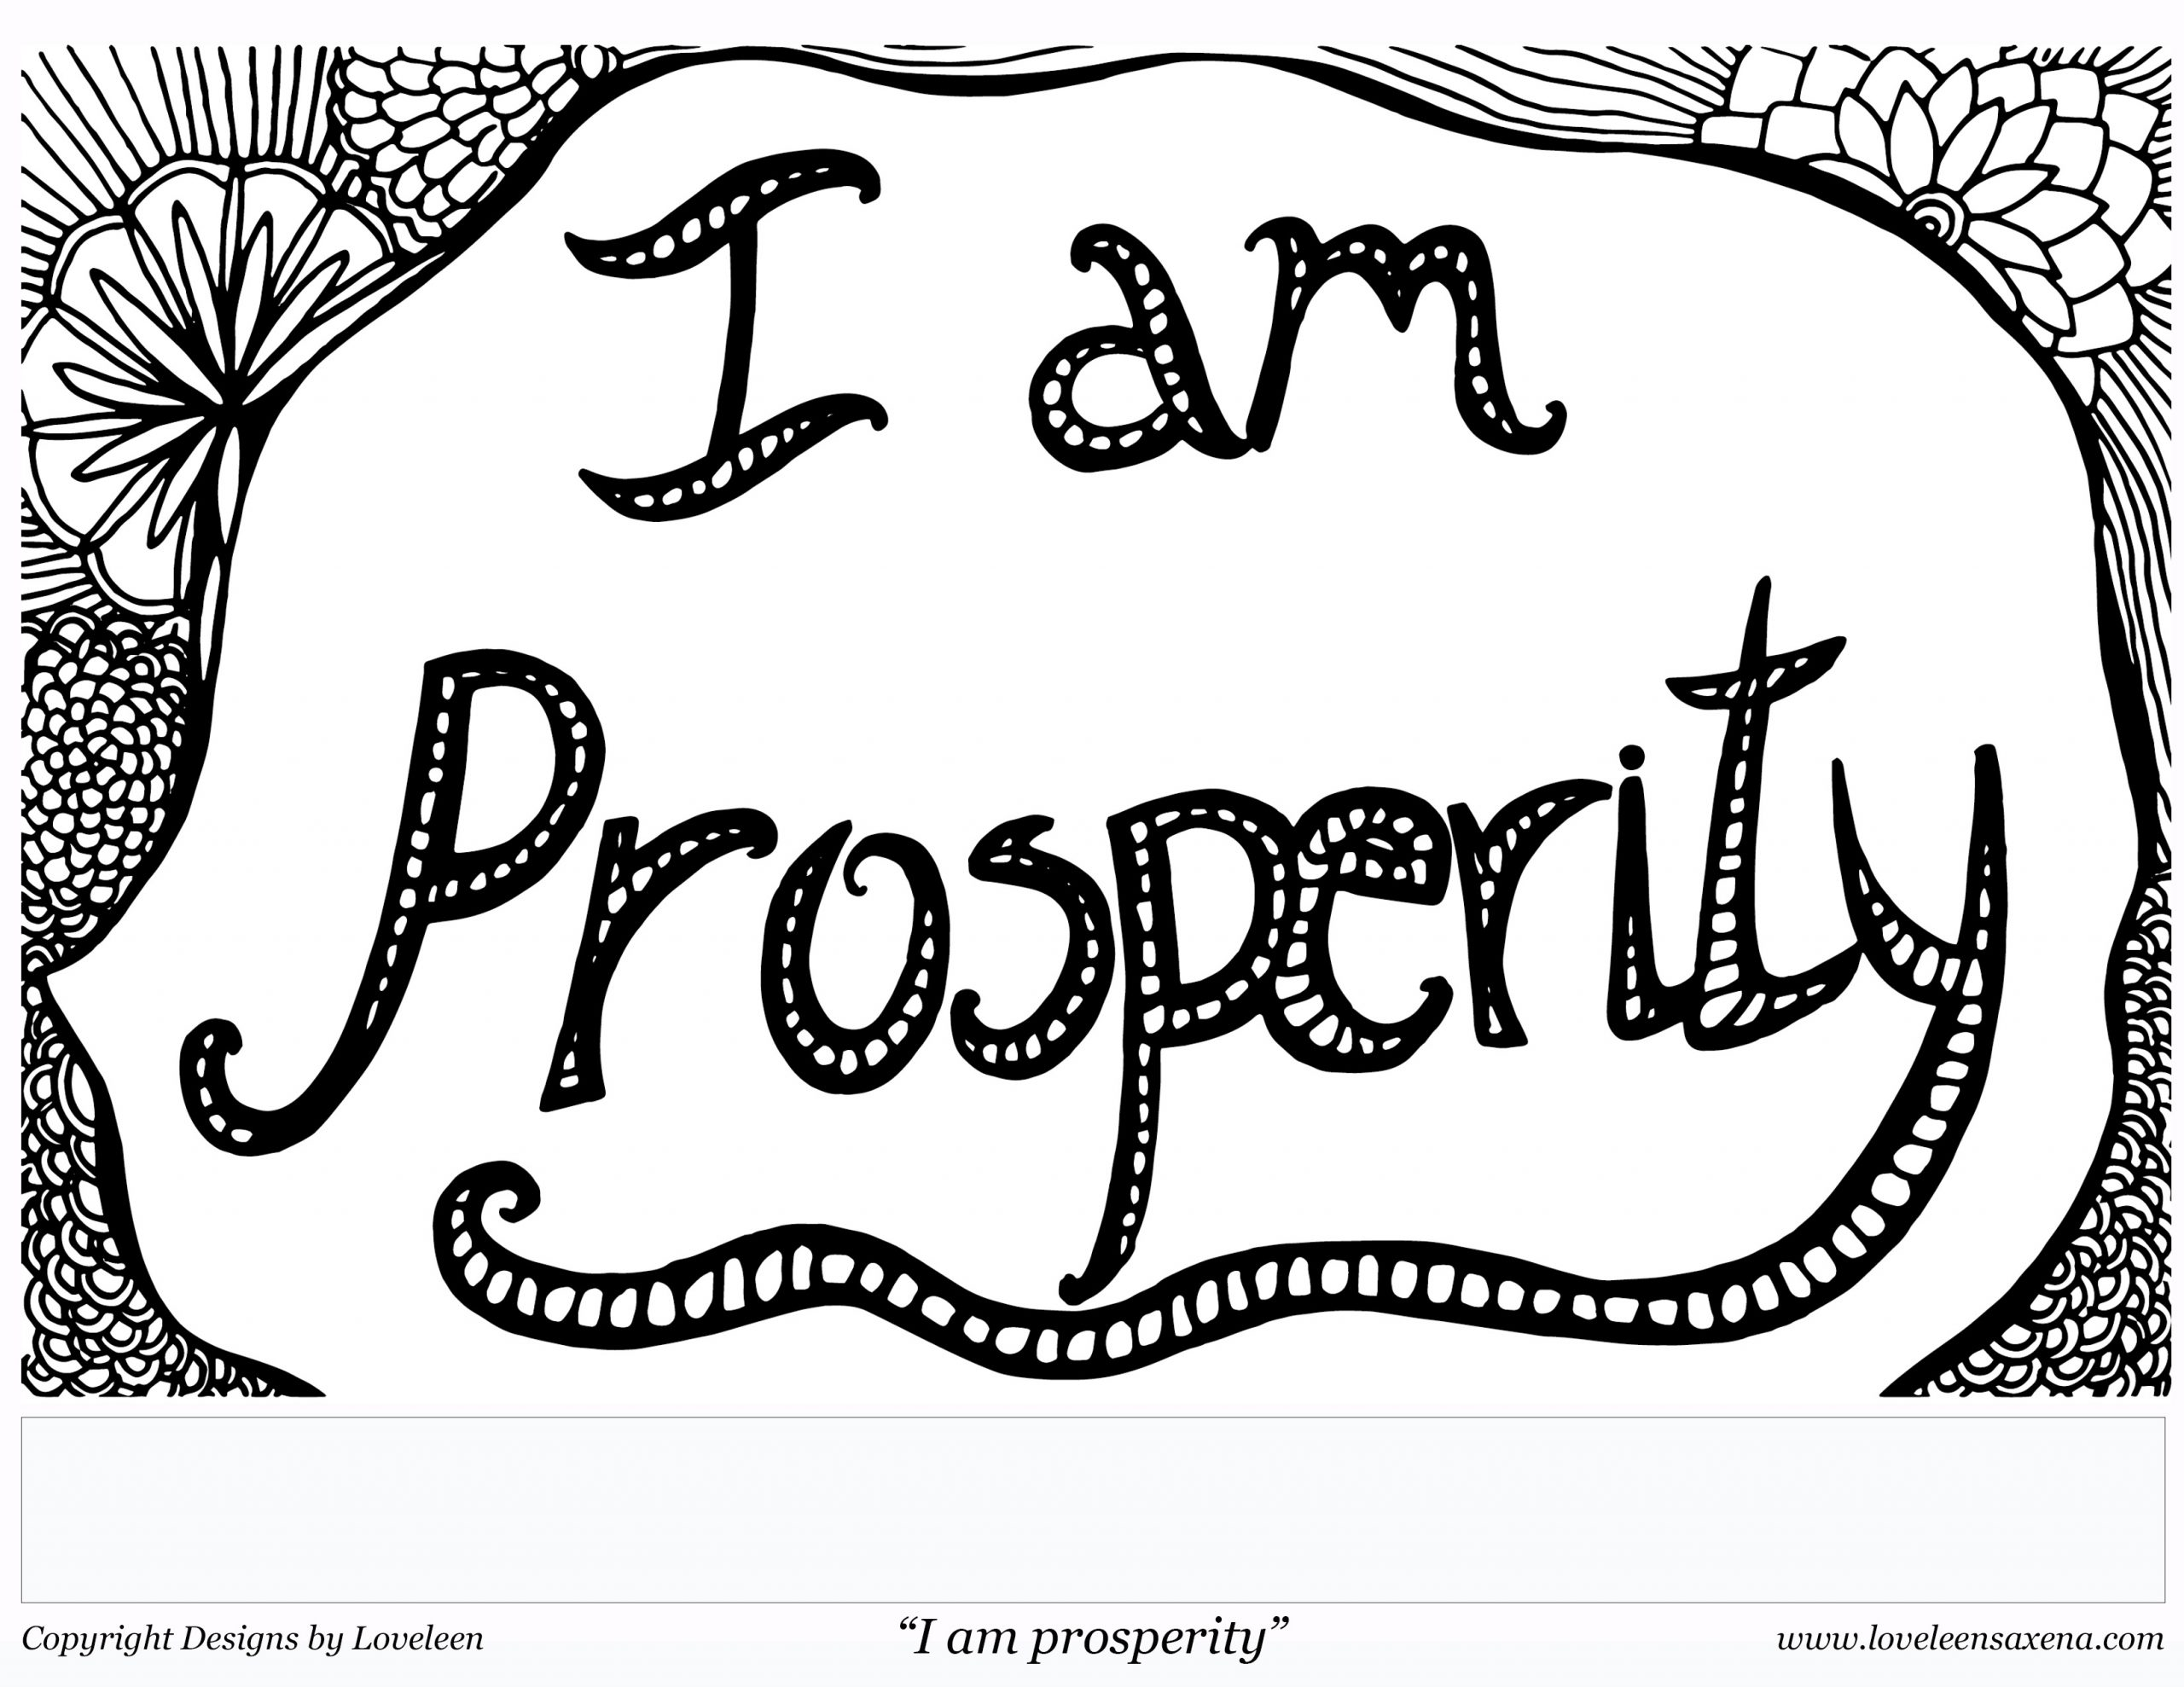 coloring-page-i-am-prosperity